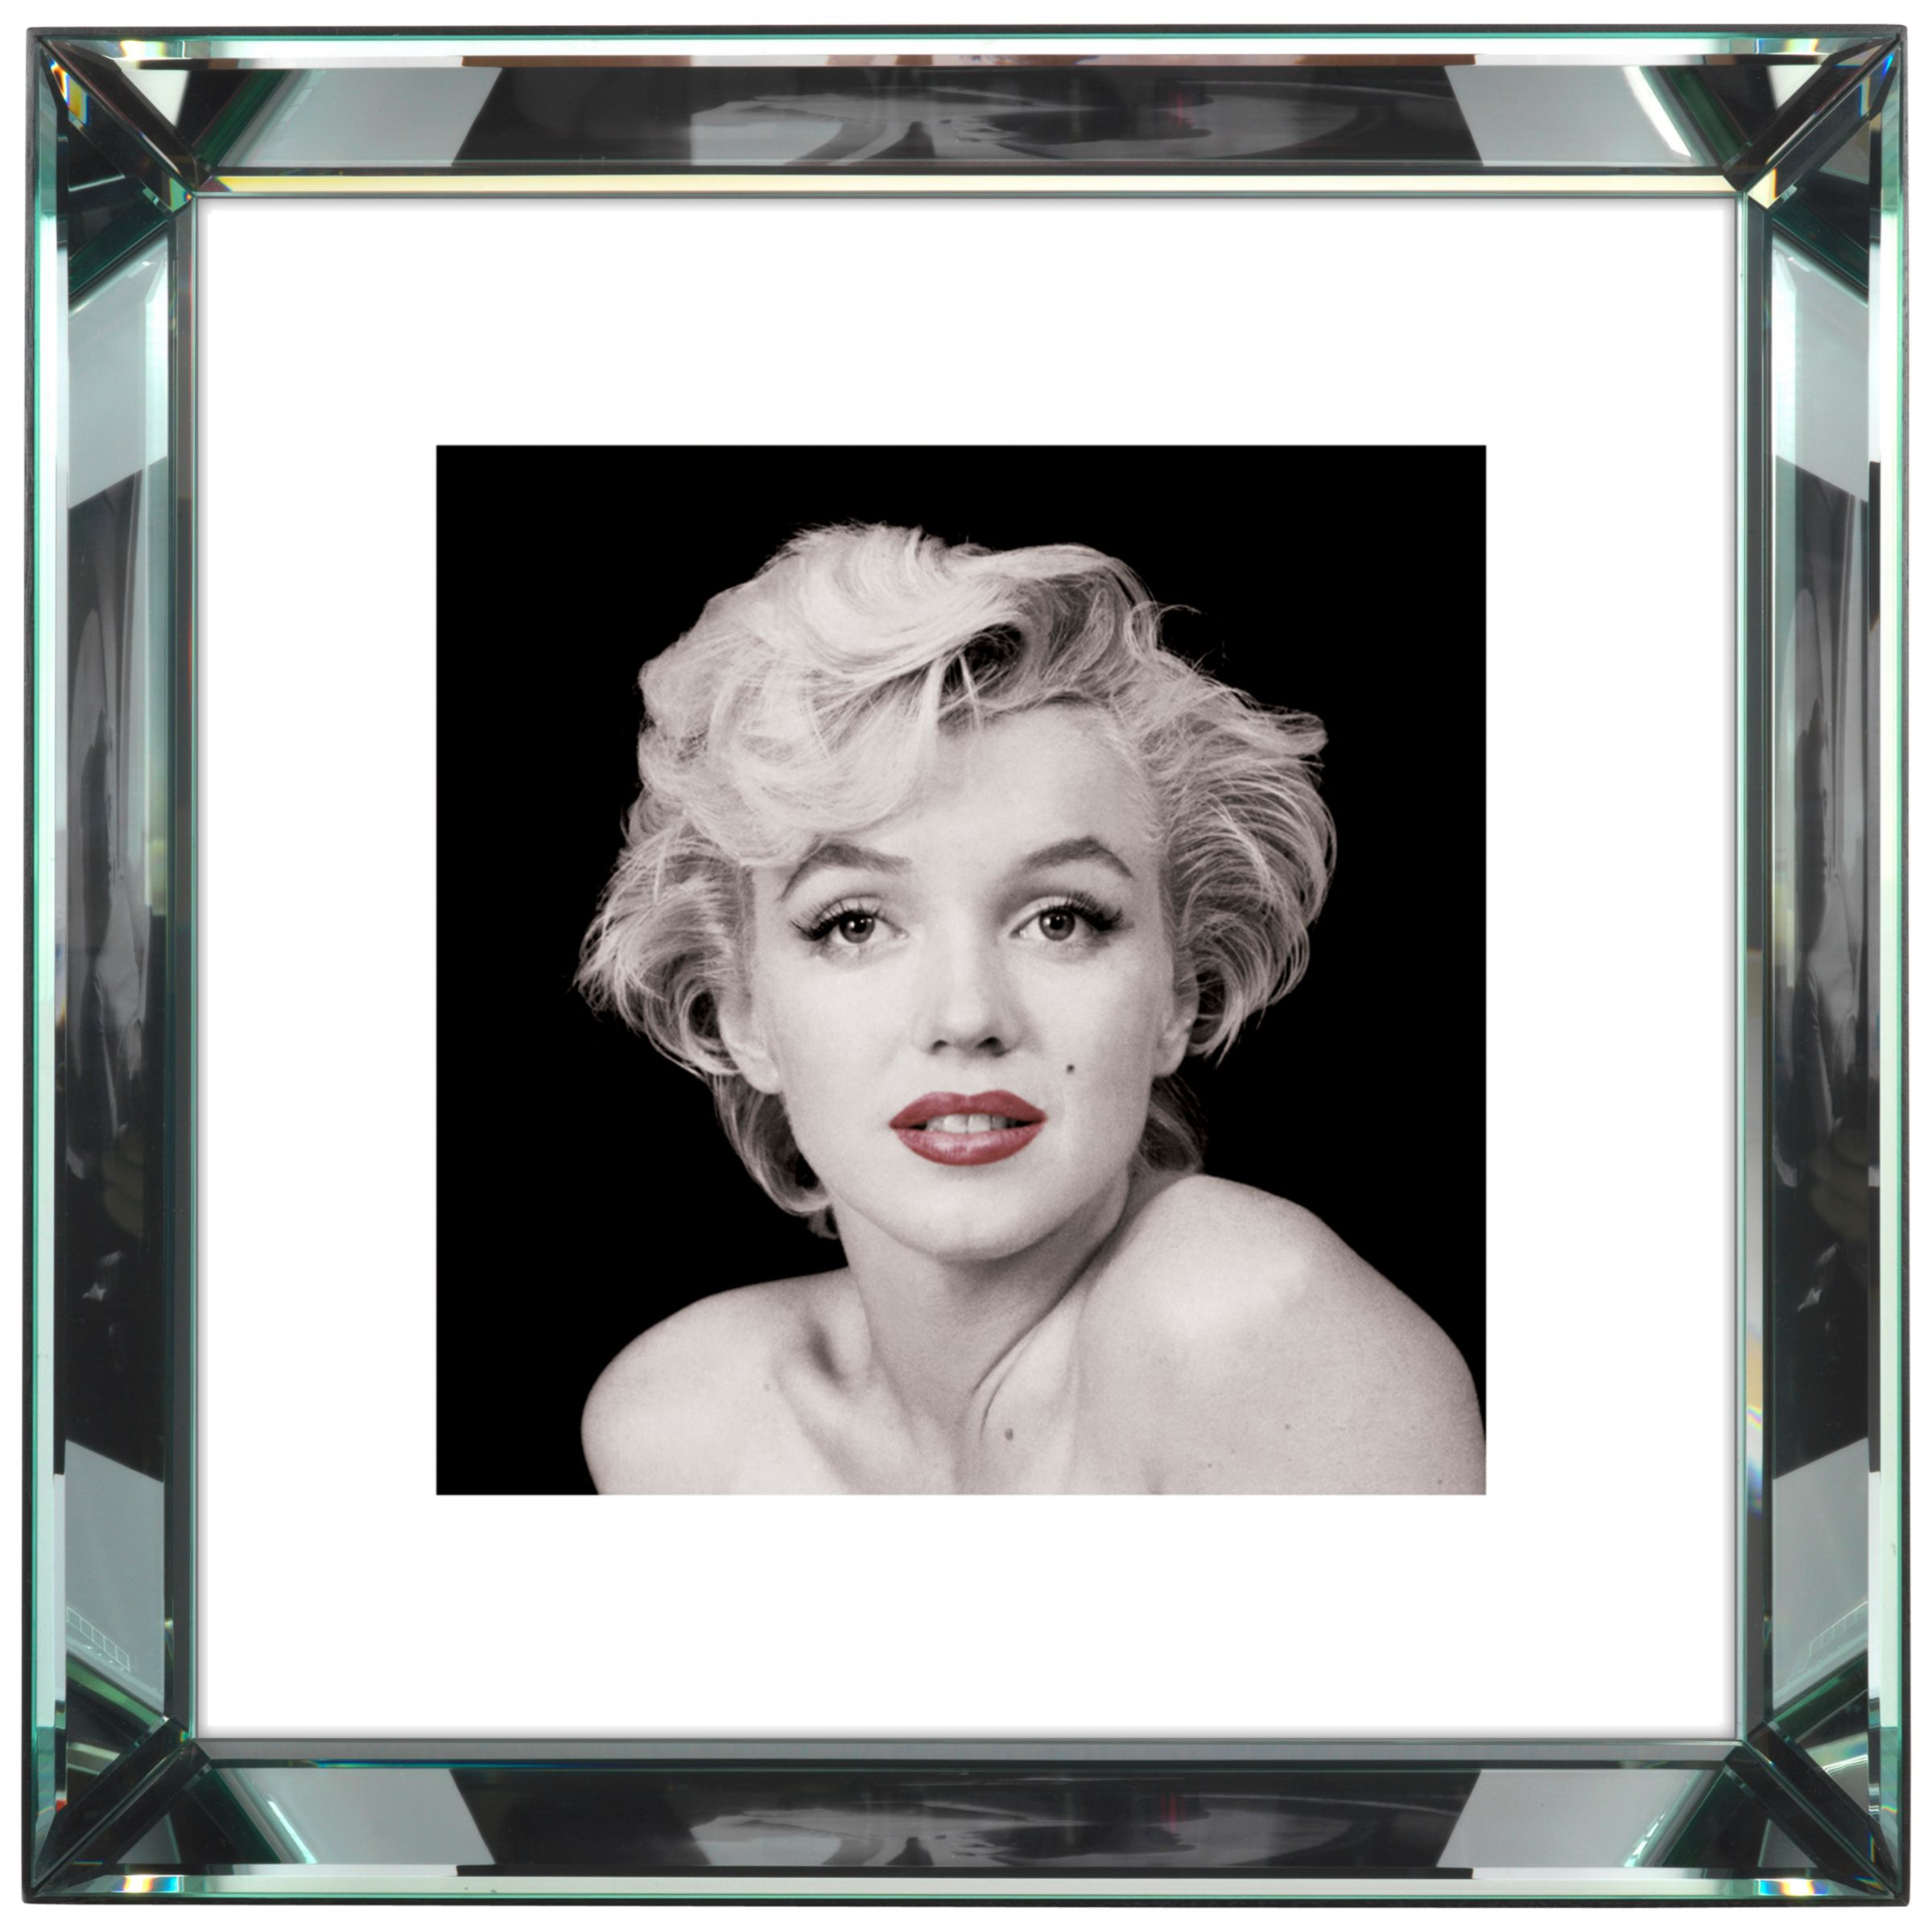 Brookpace Brookpace, The Manhattan Collection - Marilyn Monroe Red Lips Framed Print, 46 x 46cm